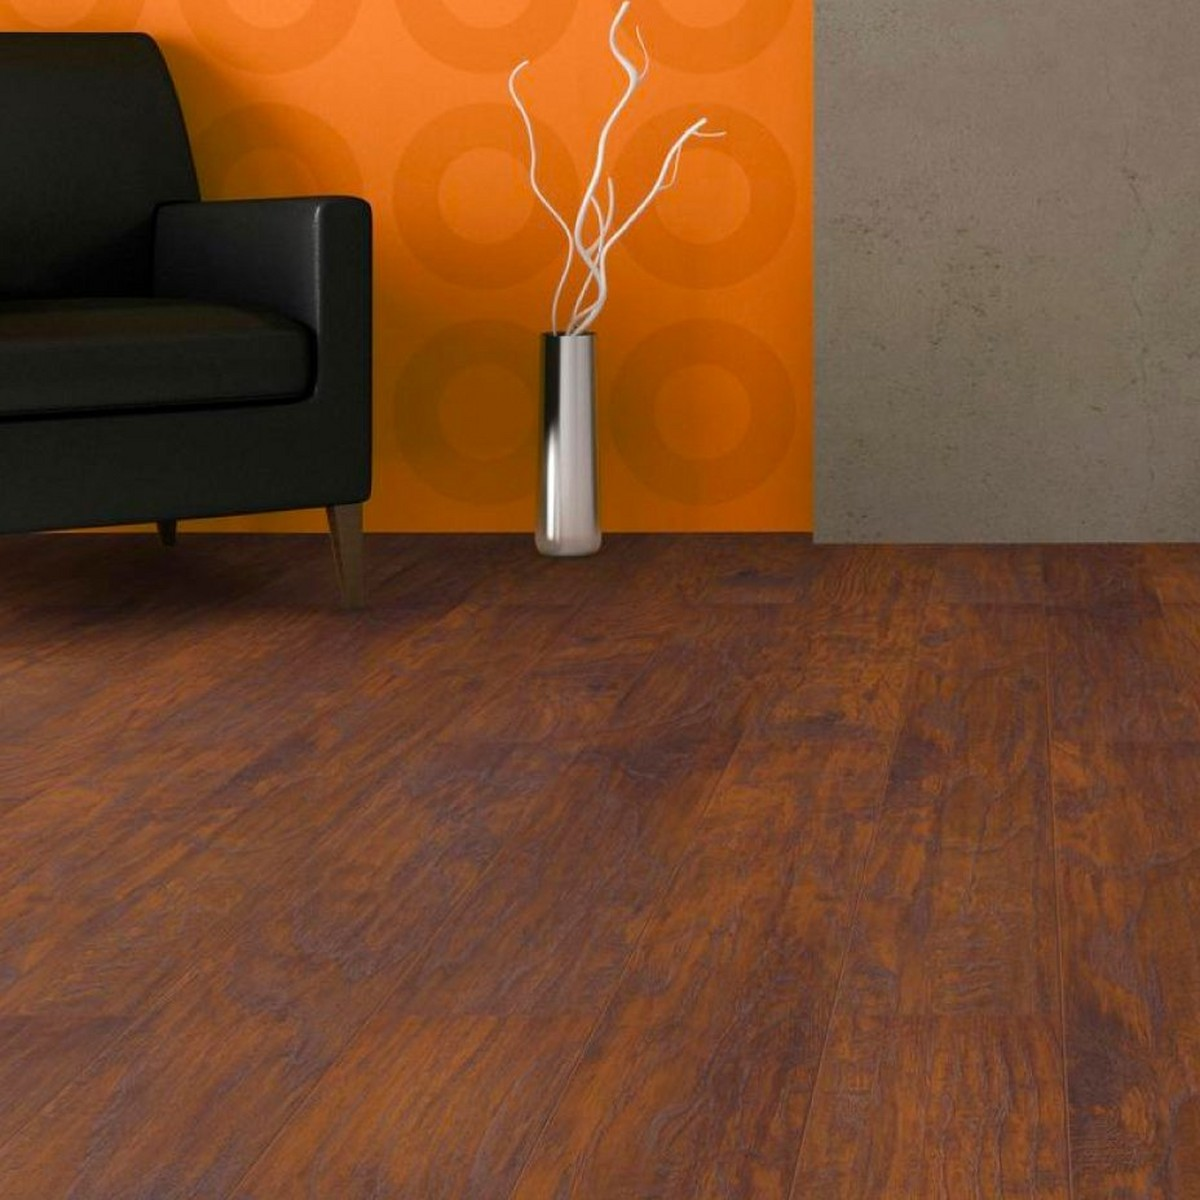 Laminate Vinyl Floor Decor - Wide width vinyl flooring